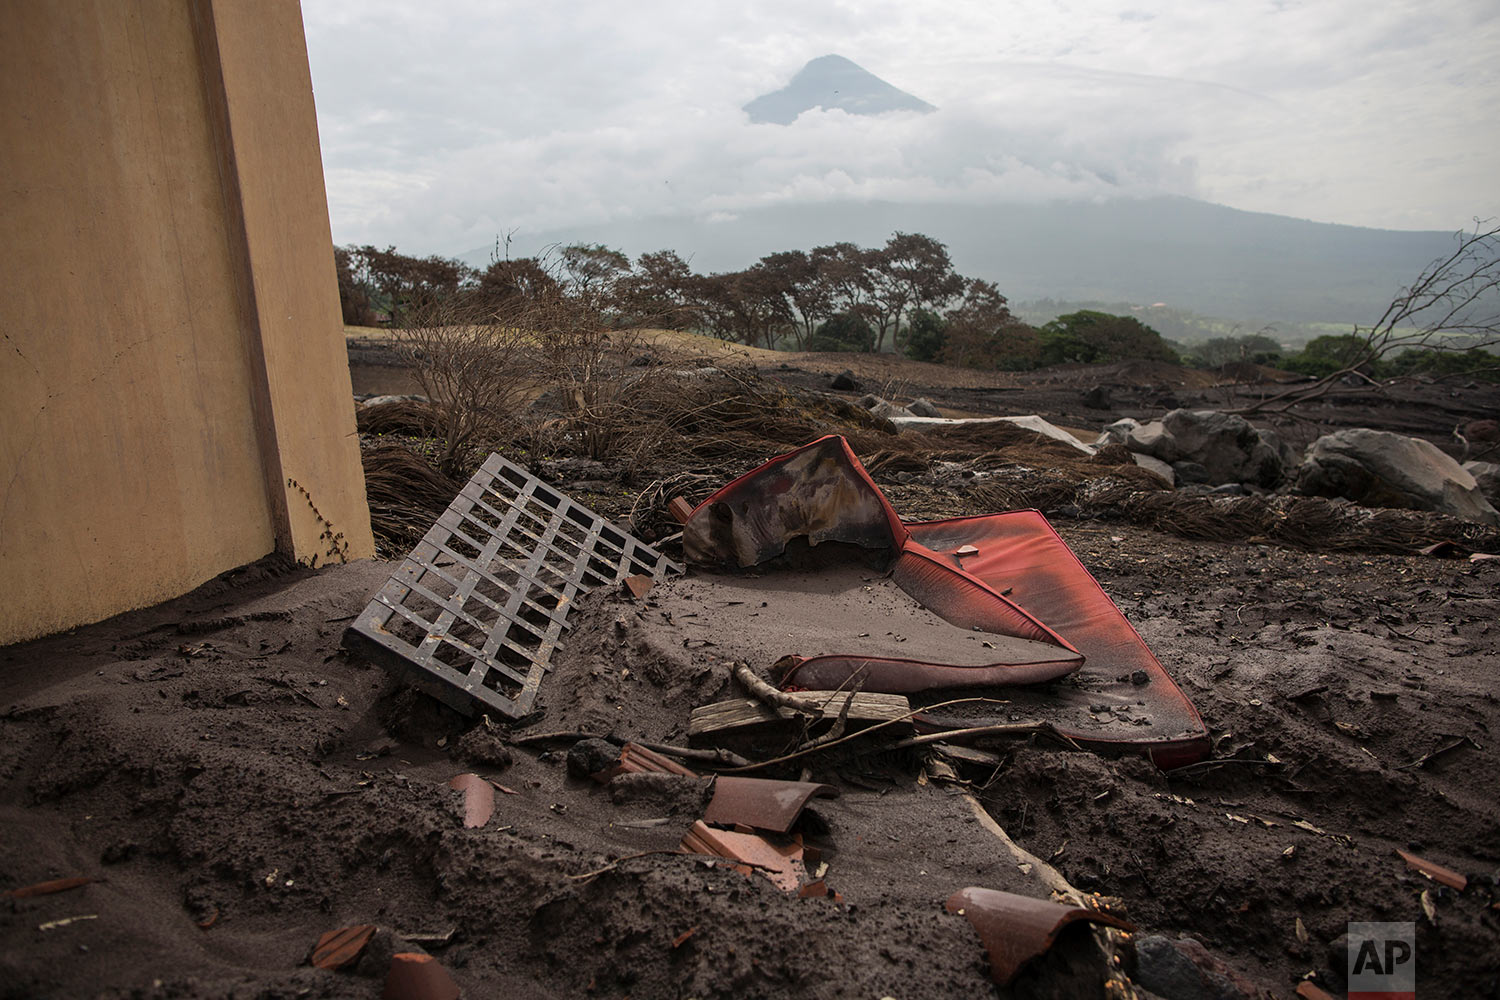 In this June 16, 2018 photo, a lounge chair lays amid volcanic debris in the yard of a home at La Reunion Golf Resort & Residences, destroyed by the eruption of the Volcano of Fire in San Miguel Los Lotes, Guatemala. (AP Photo/Rodrigo Abd)